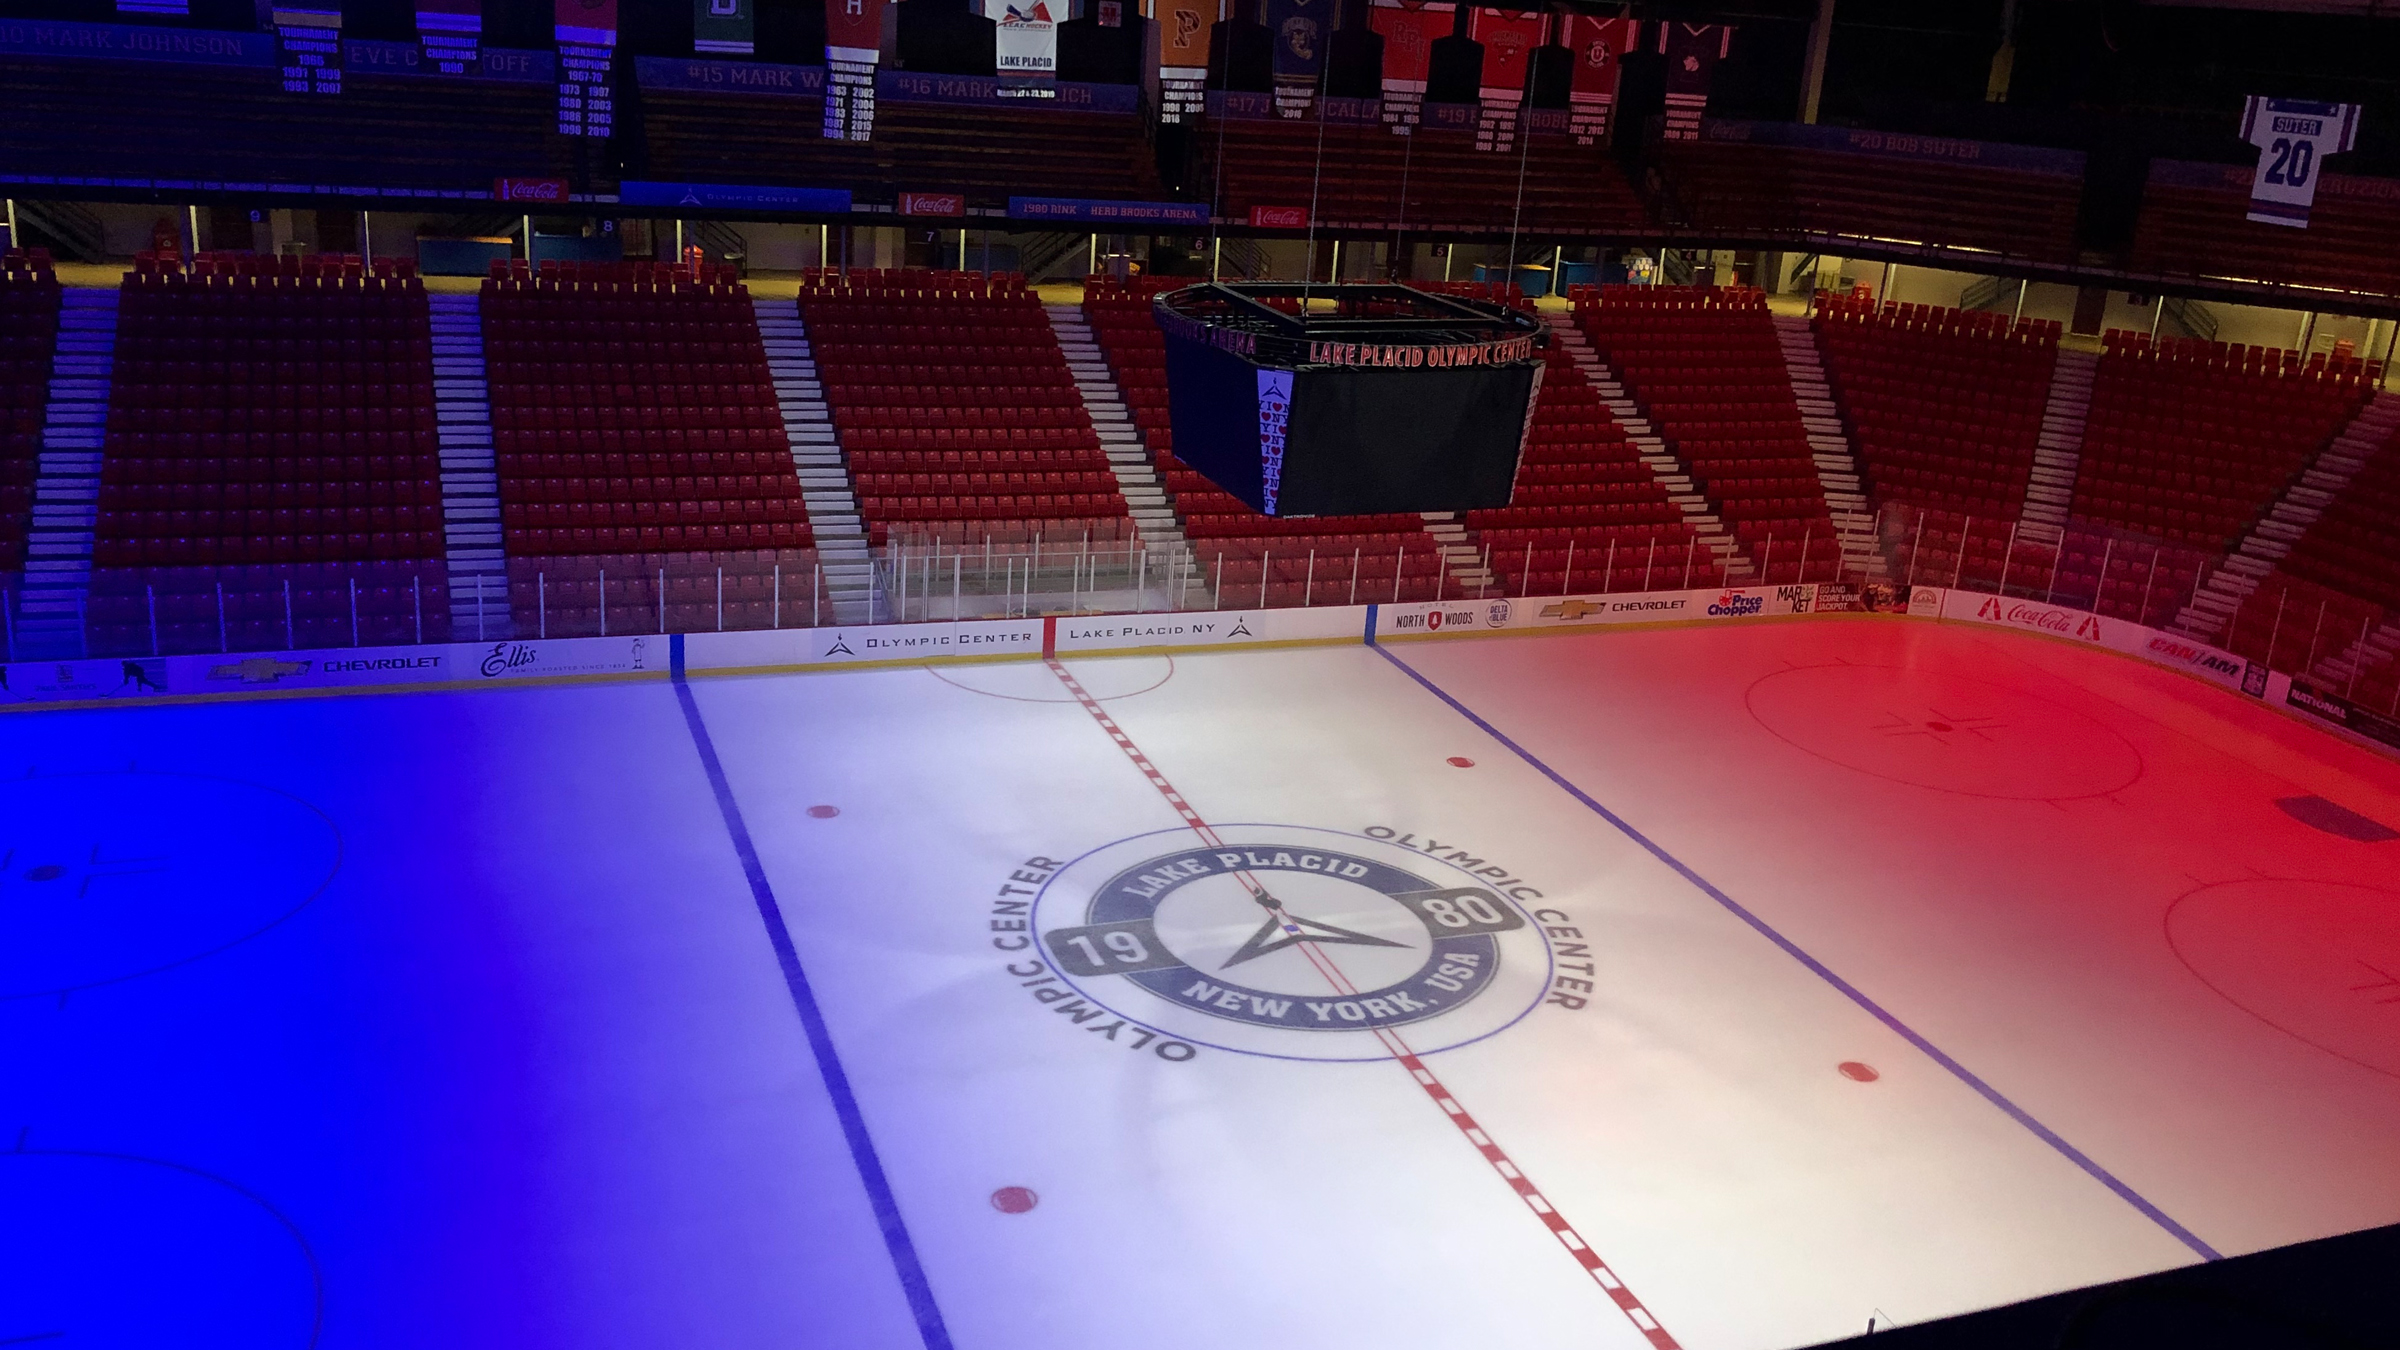 Hockey arena with colored lighting on ice